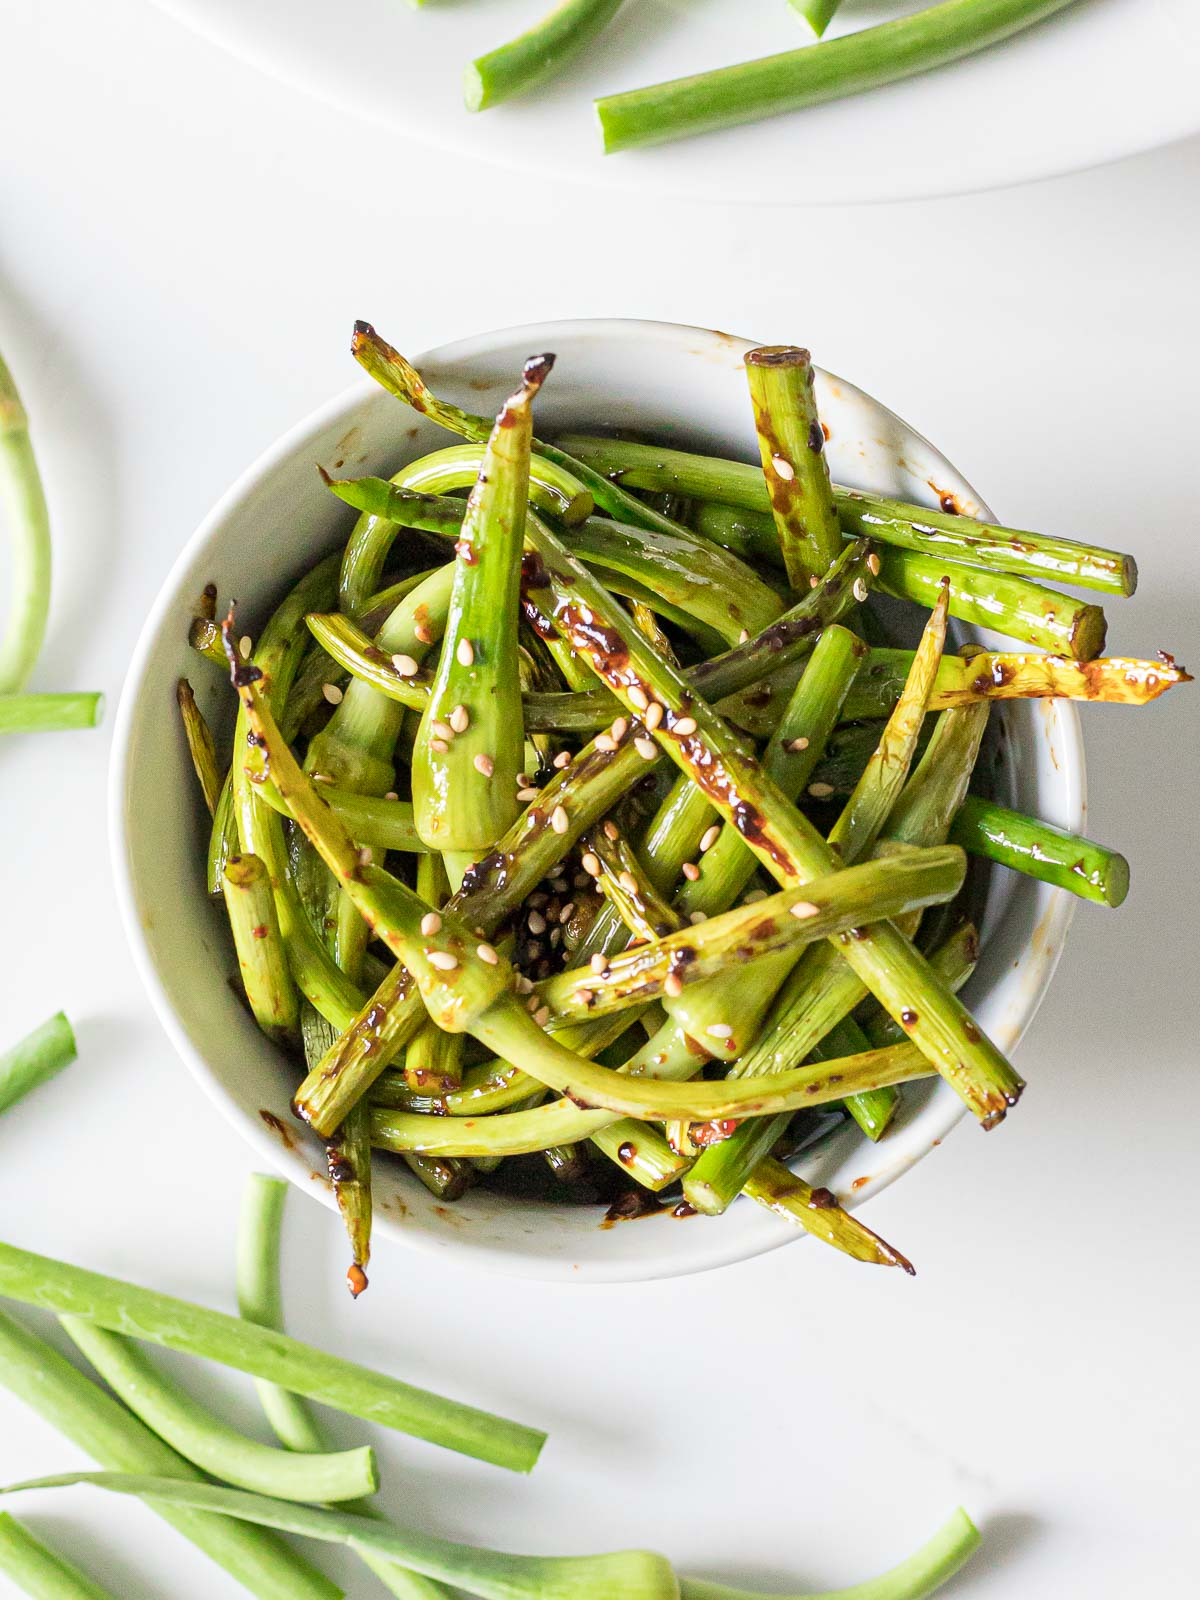 sauteed garlic scapes in a white bowl